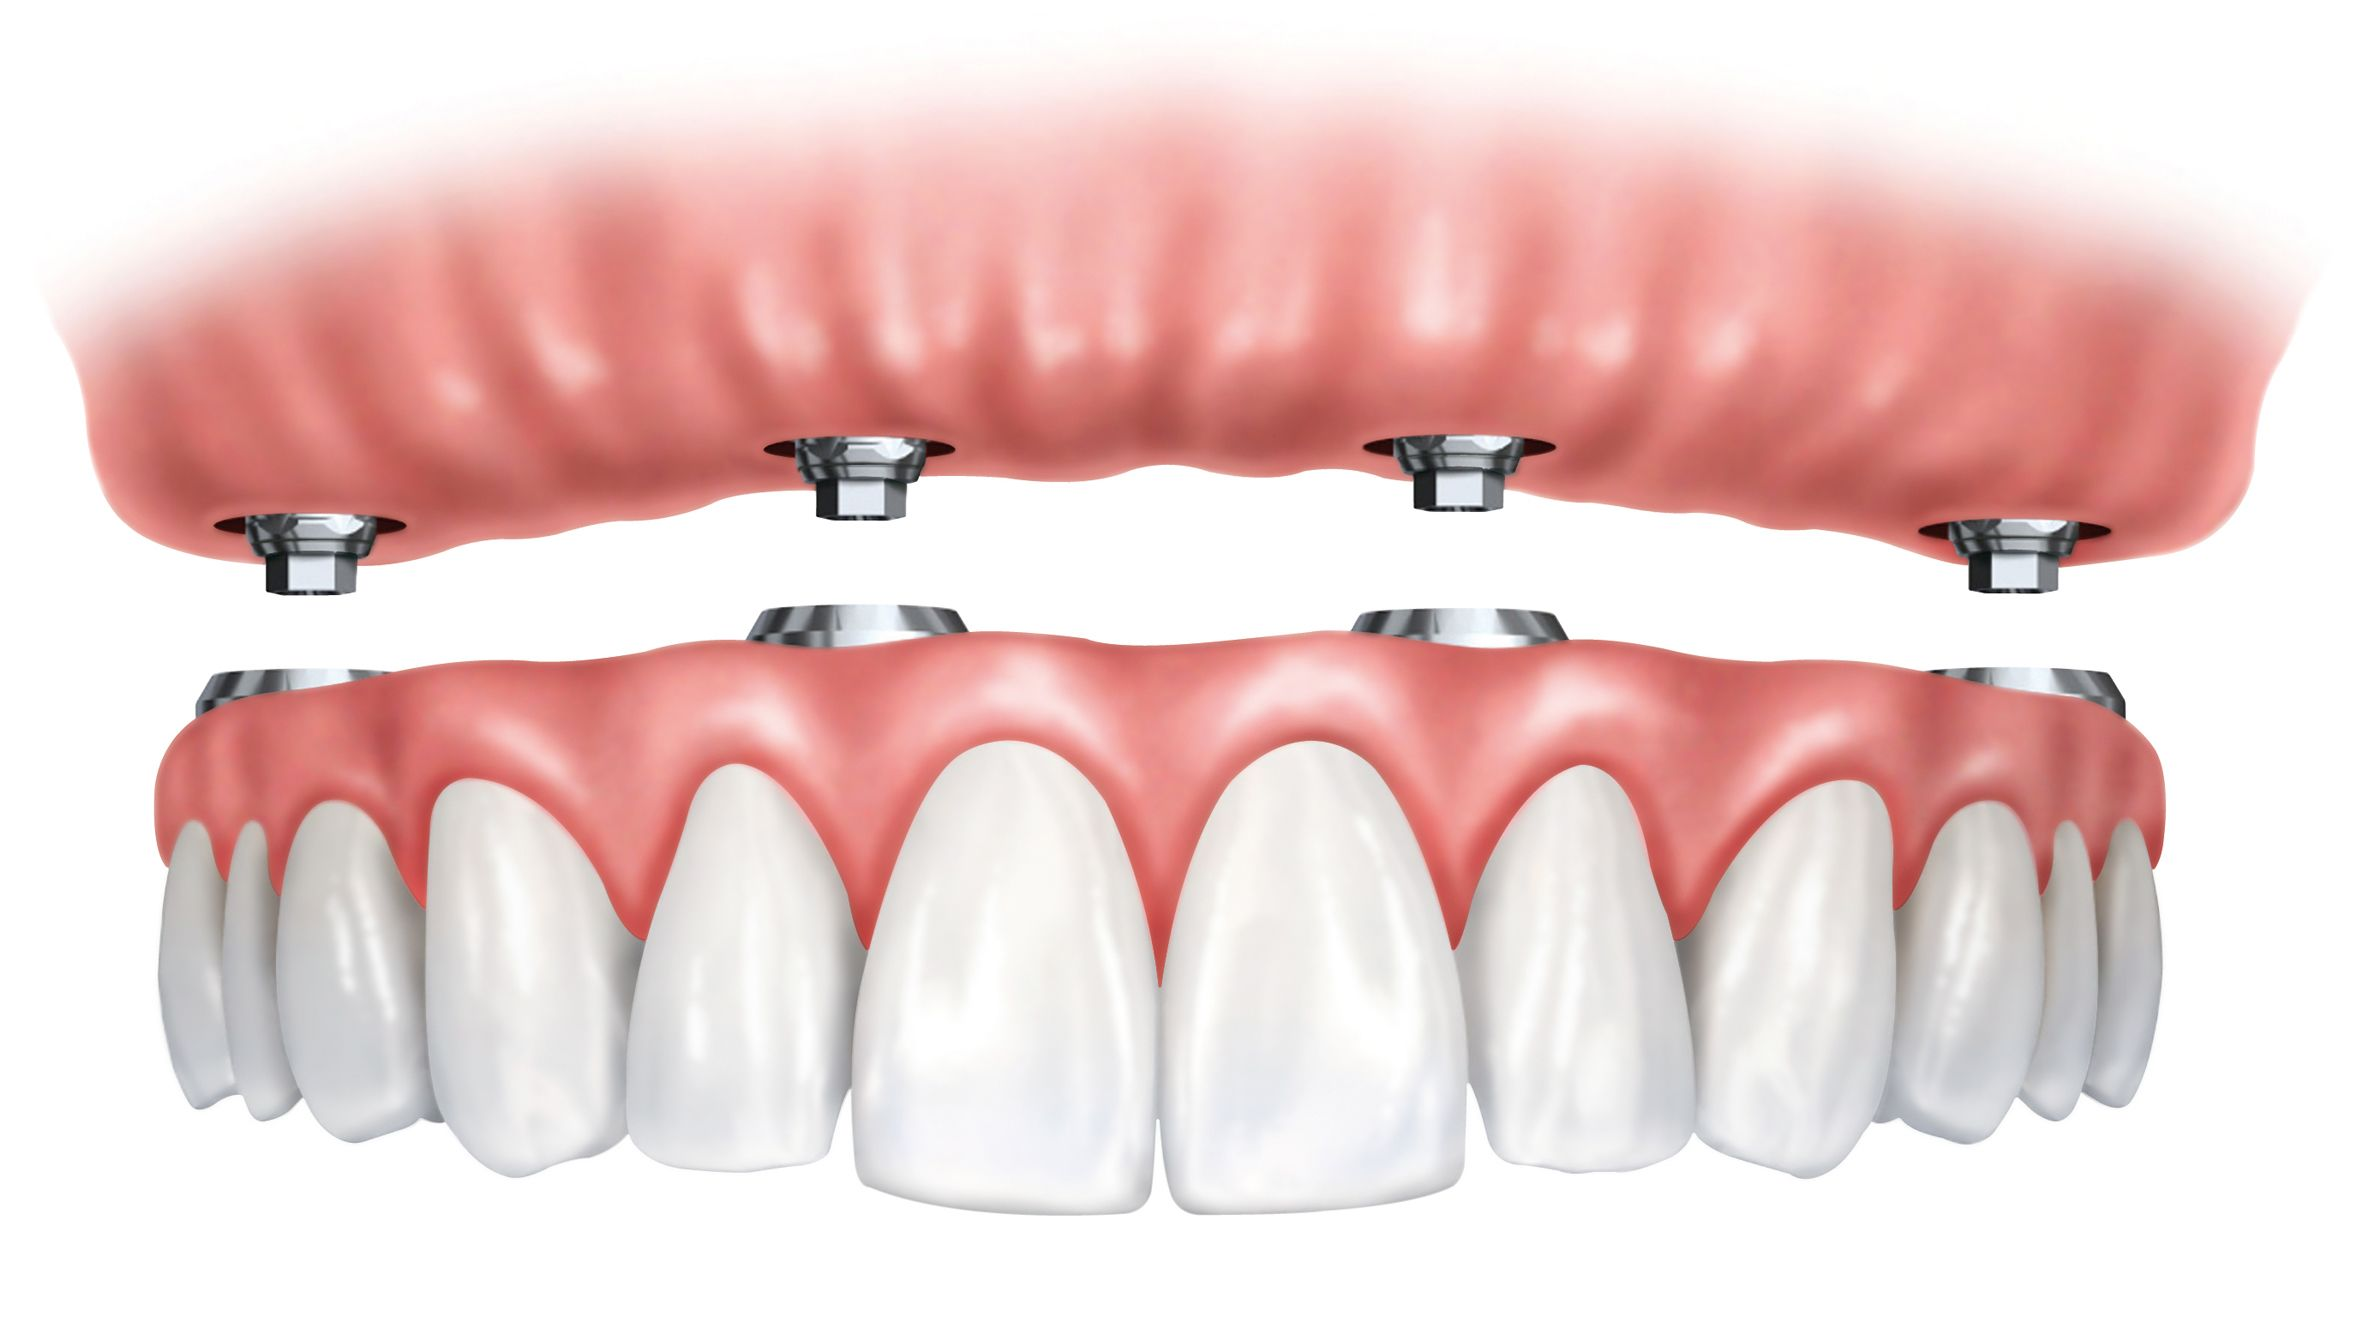 All-on-4 denture and dental implants